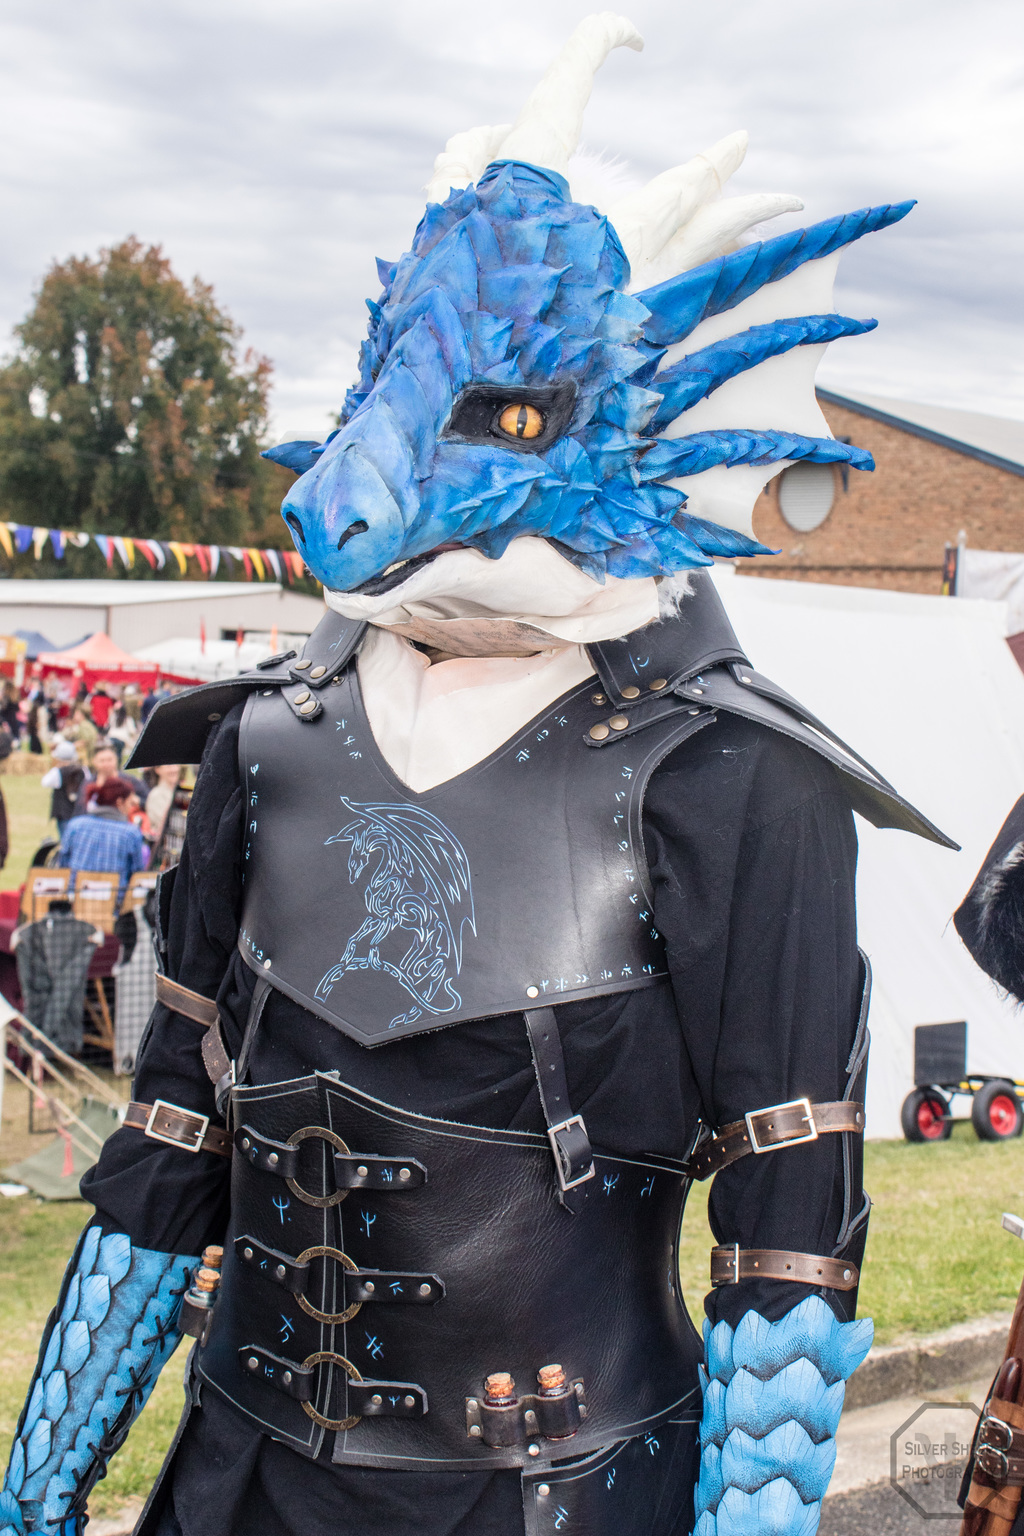 Most recent image: Ironfest 2017: Draggo 2